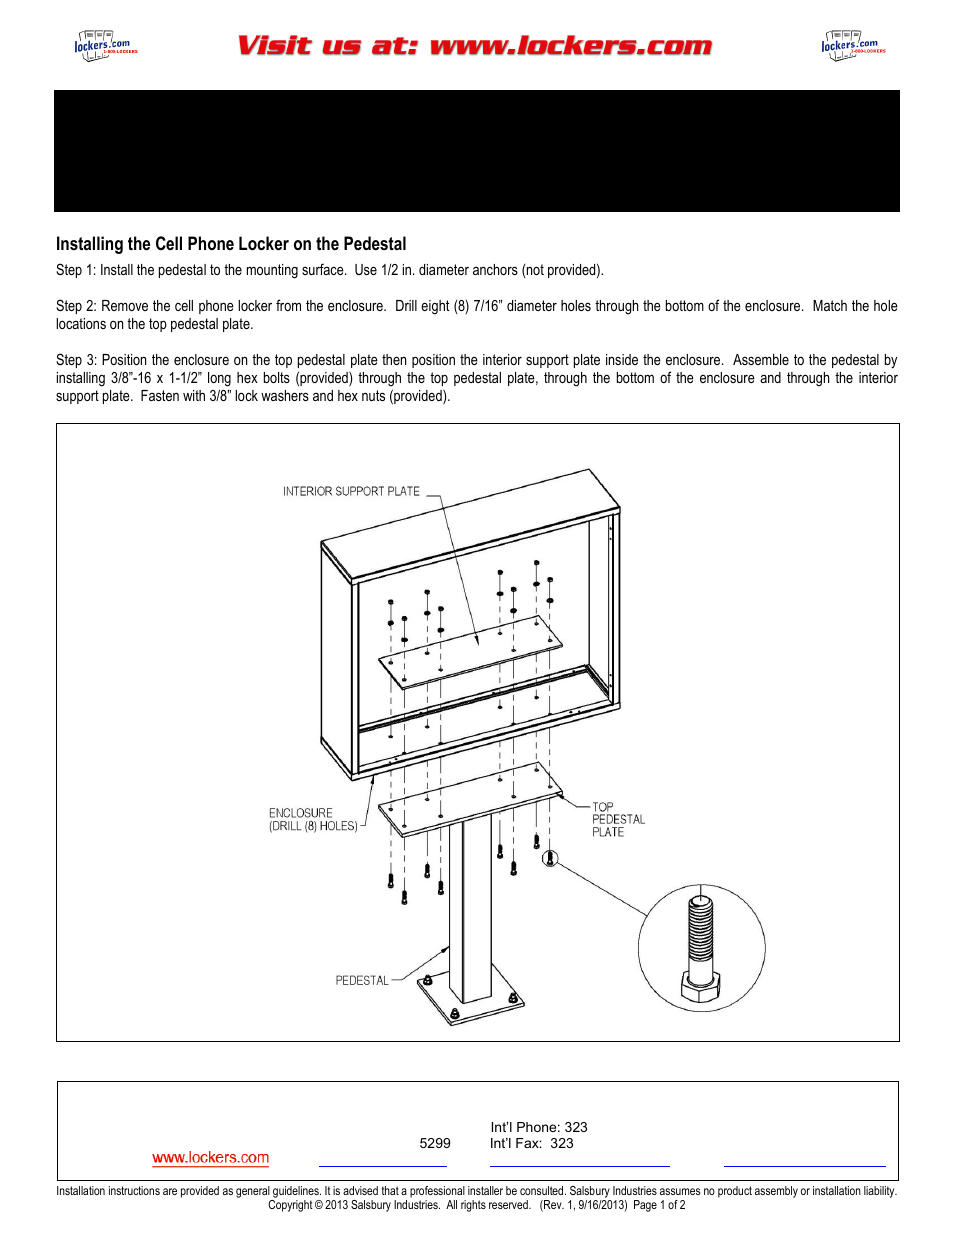 Salsbury Industries Cell Phone Locker Pedestal For Select 19000